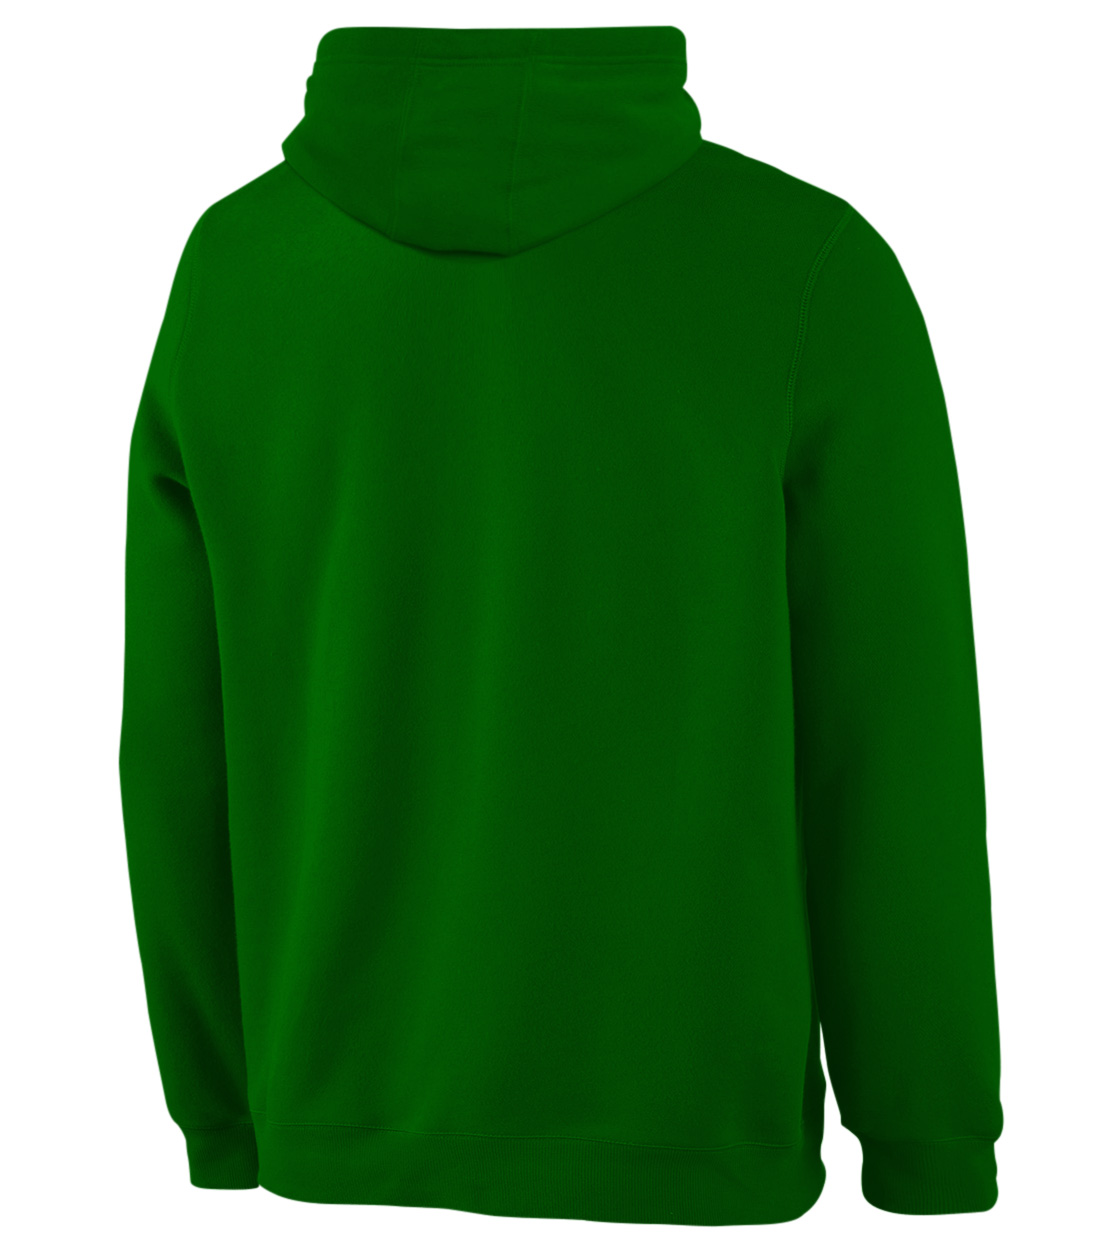 Air Jordan Hoodie (HD-GRN-8-PLYR-JRDN-AIR)